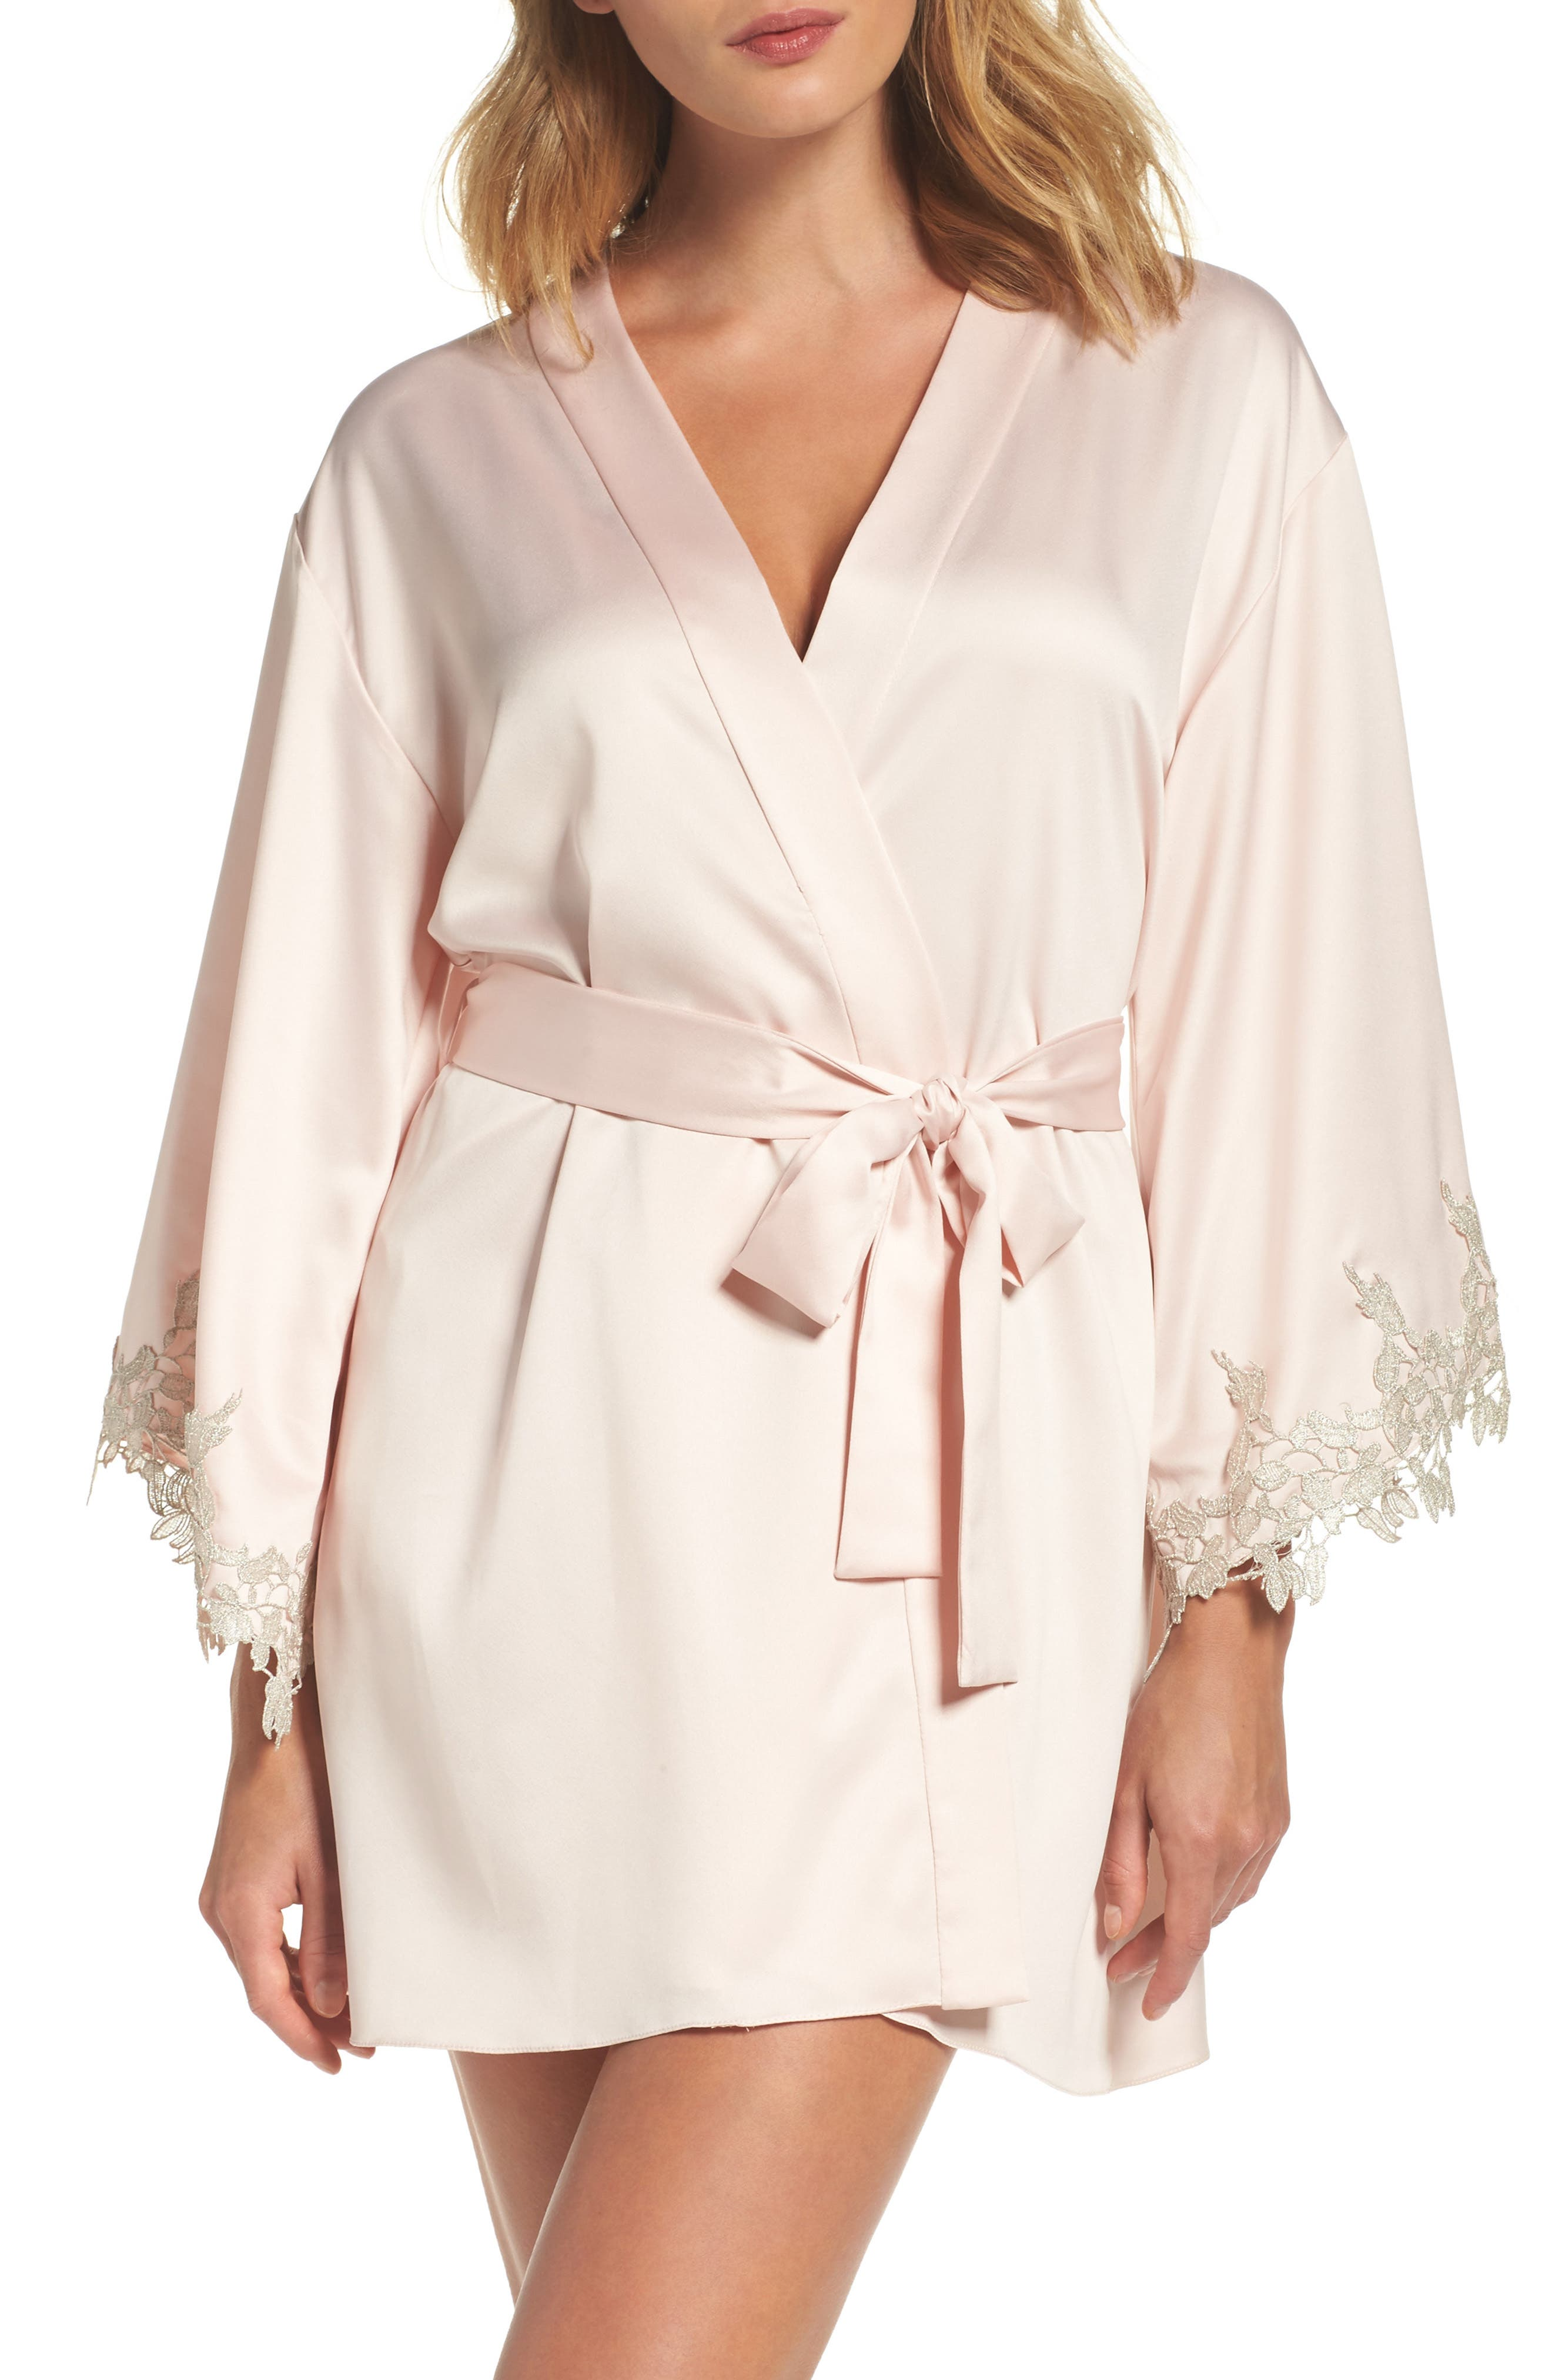 Alessia Charm Satin Robe,                         Main,                         color, Buff